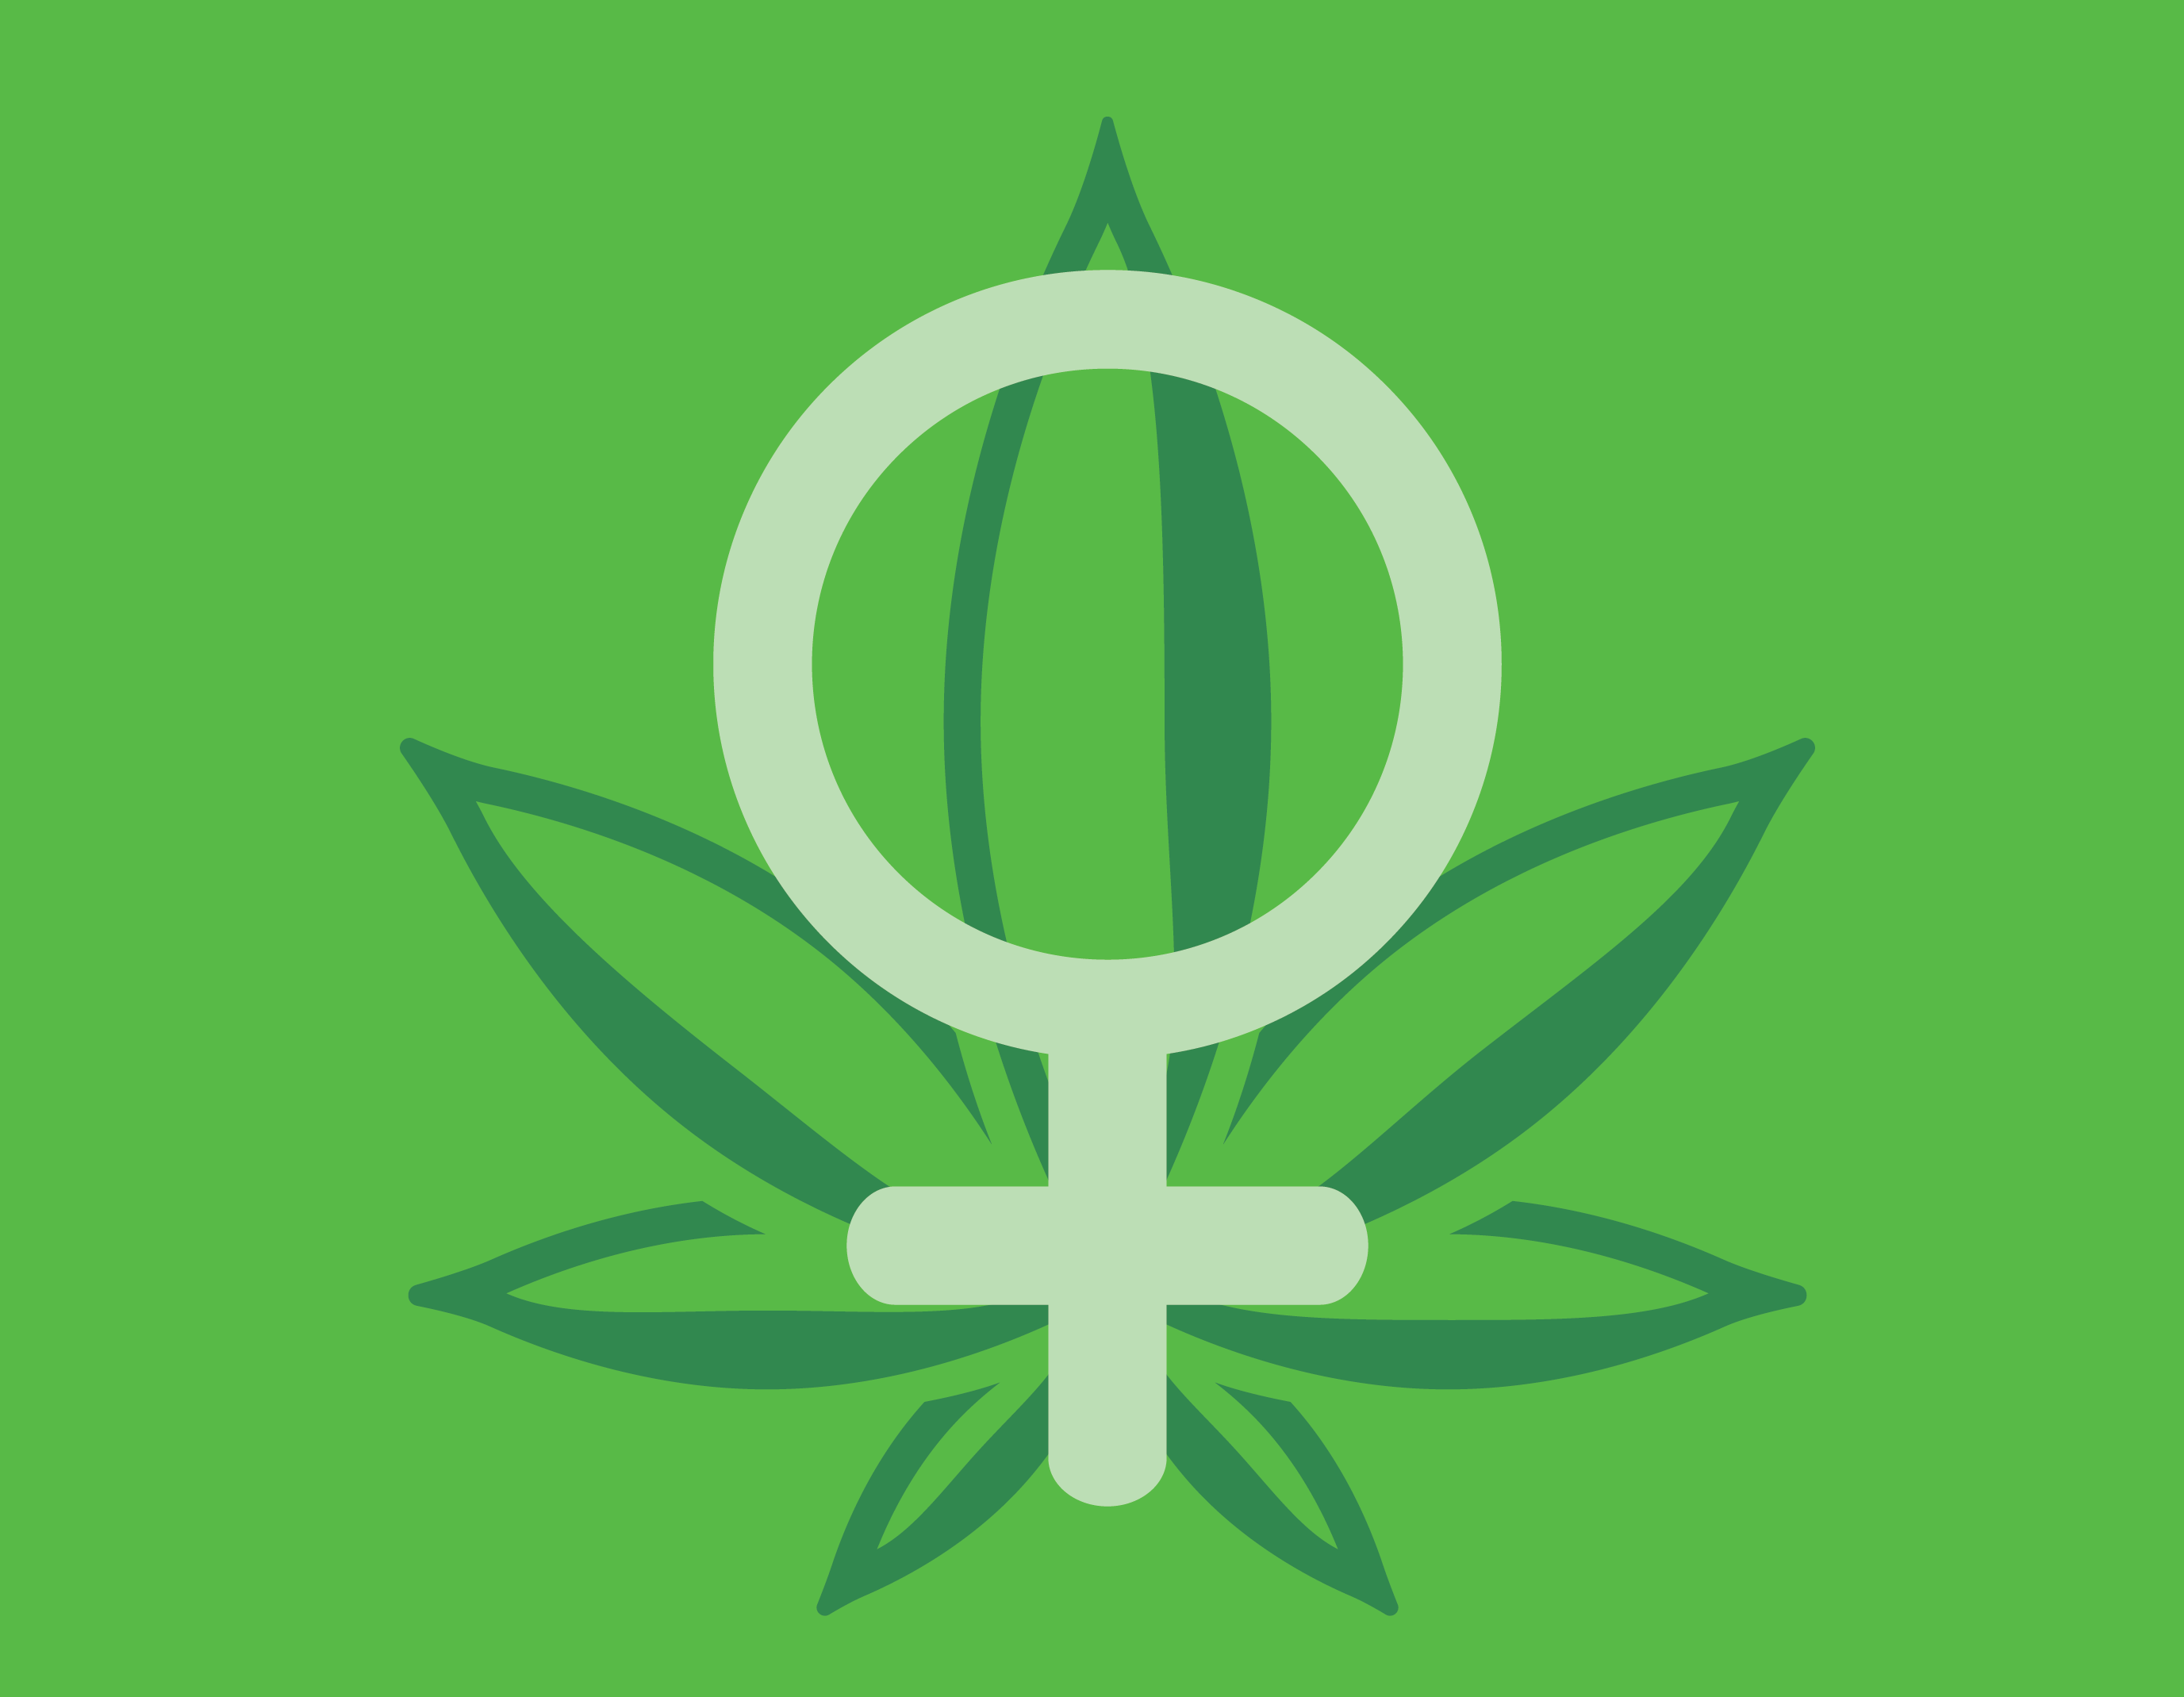 woman cannabis marijuana consume tastes preferences royal queen seeds favorite